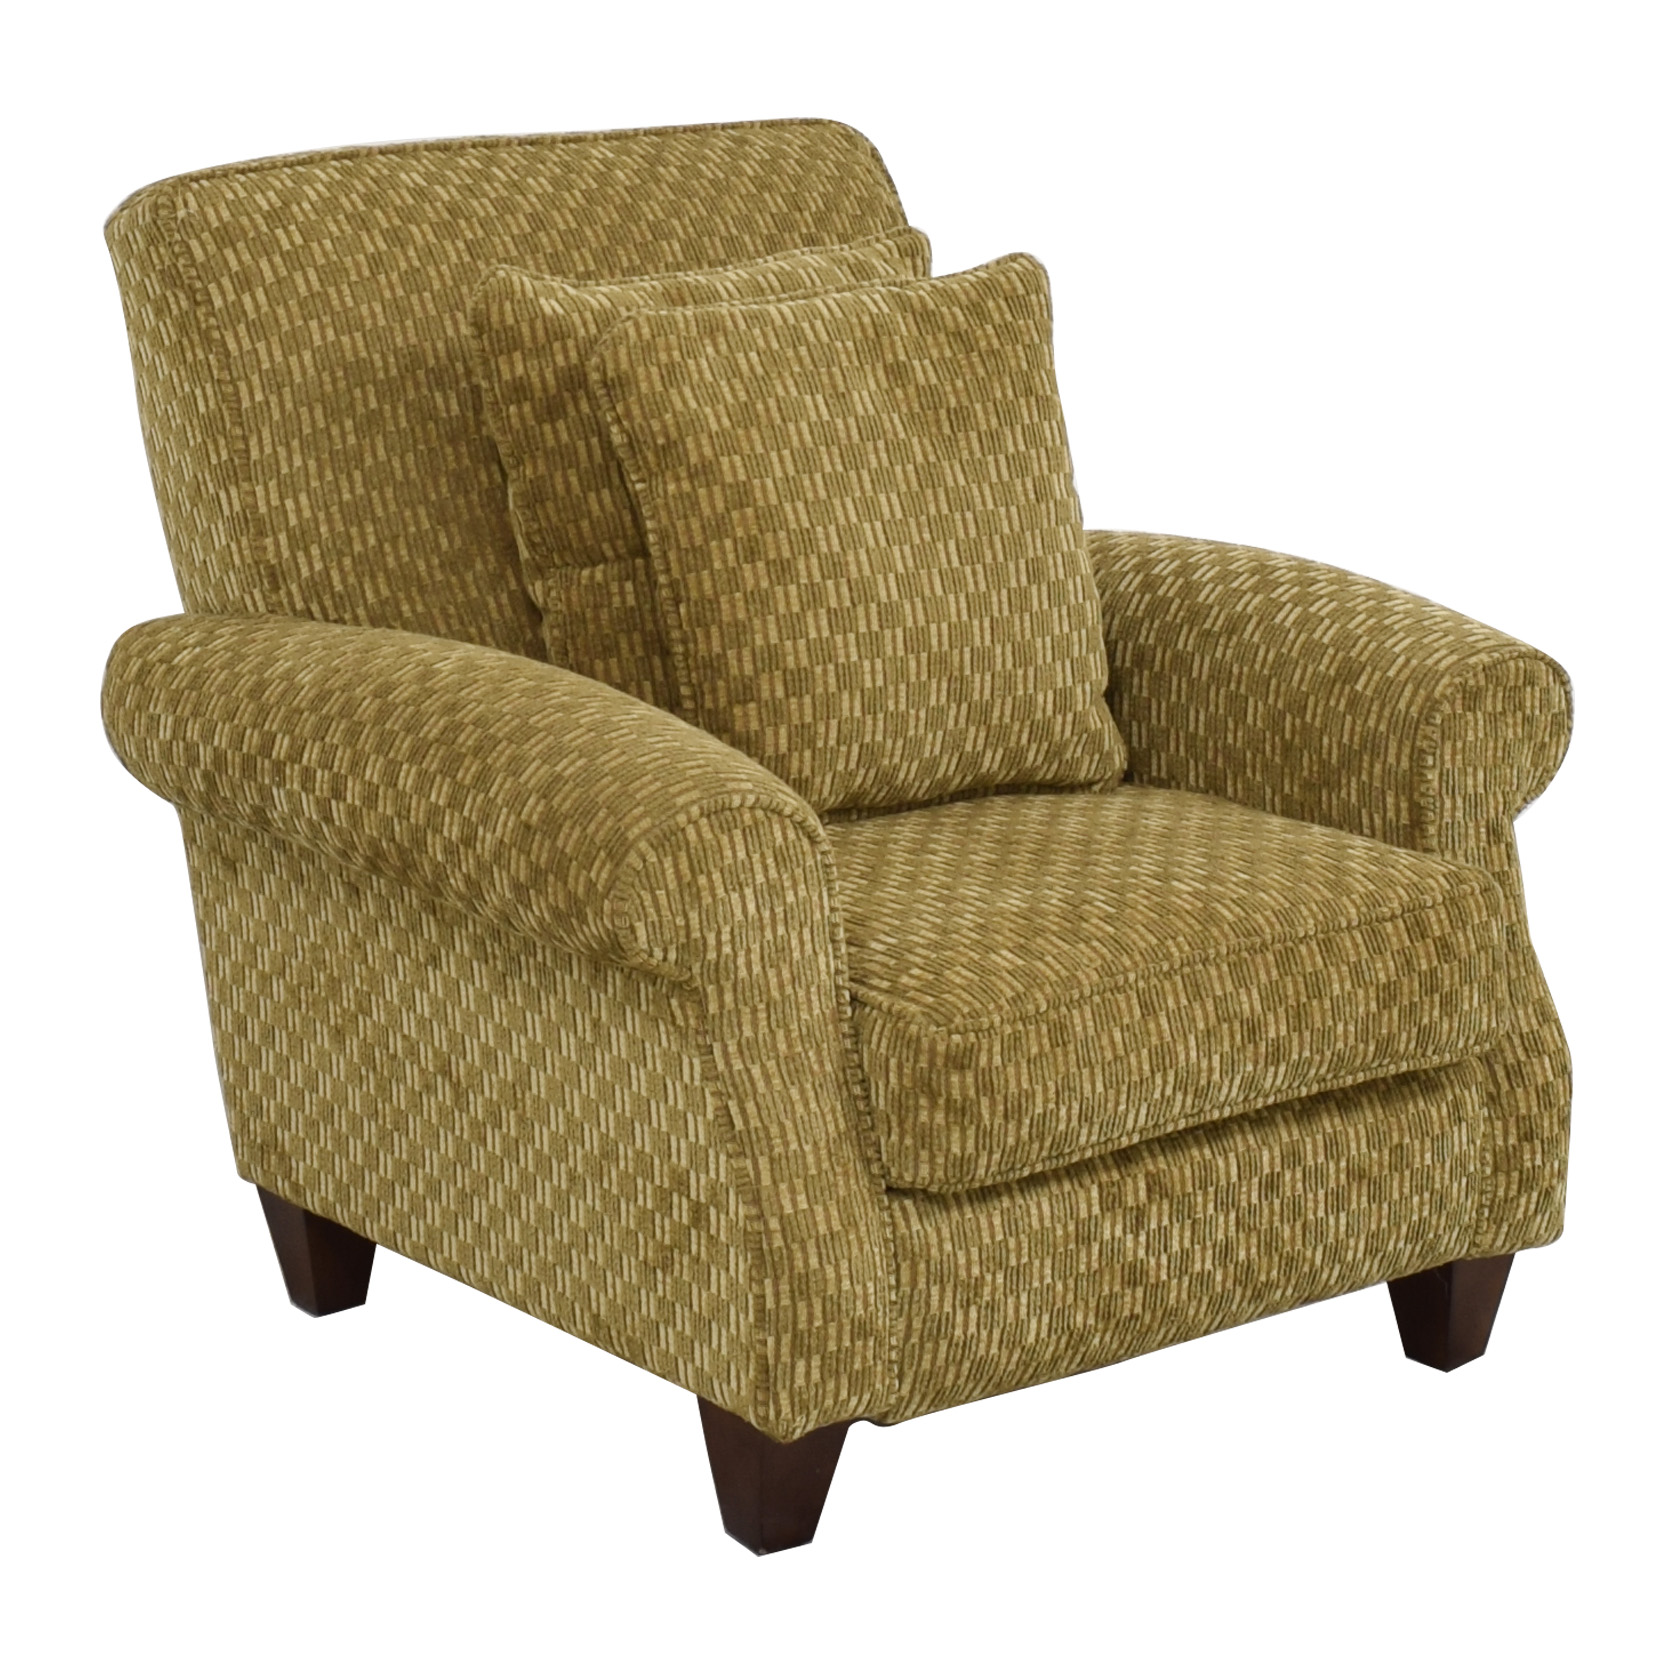 Alan White Alan White Casual Stationary Accent Chair nj